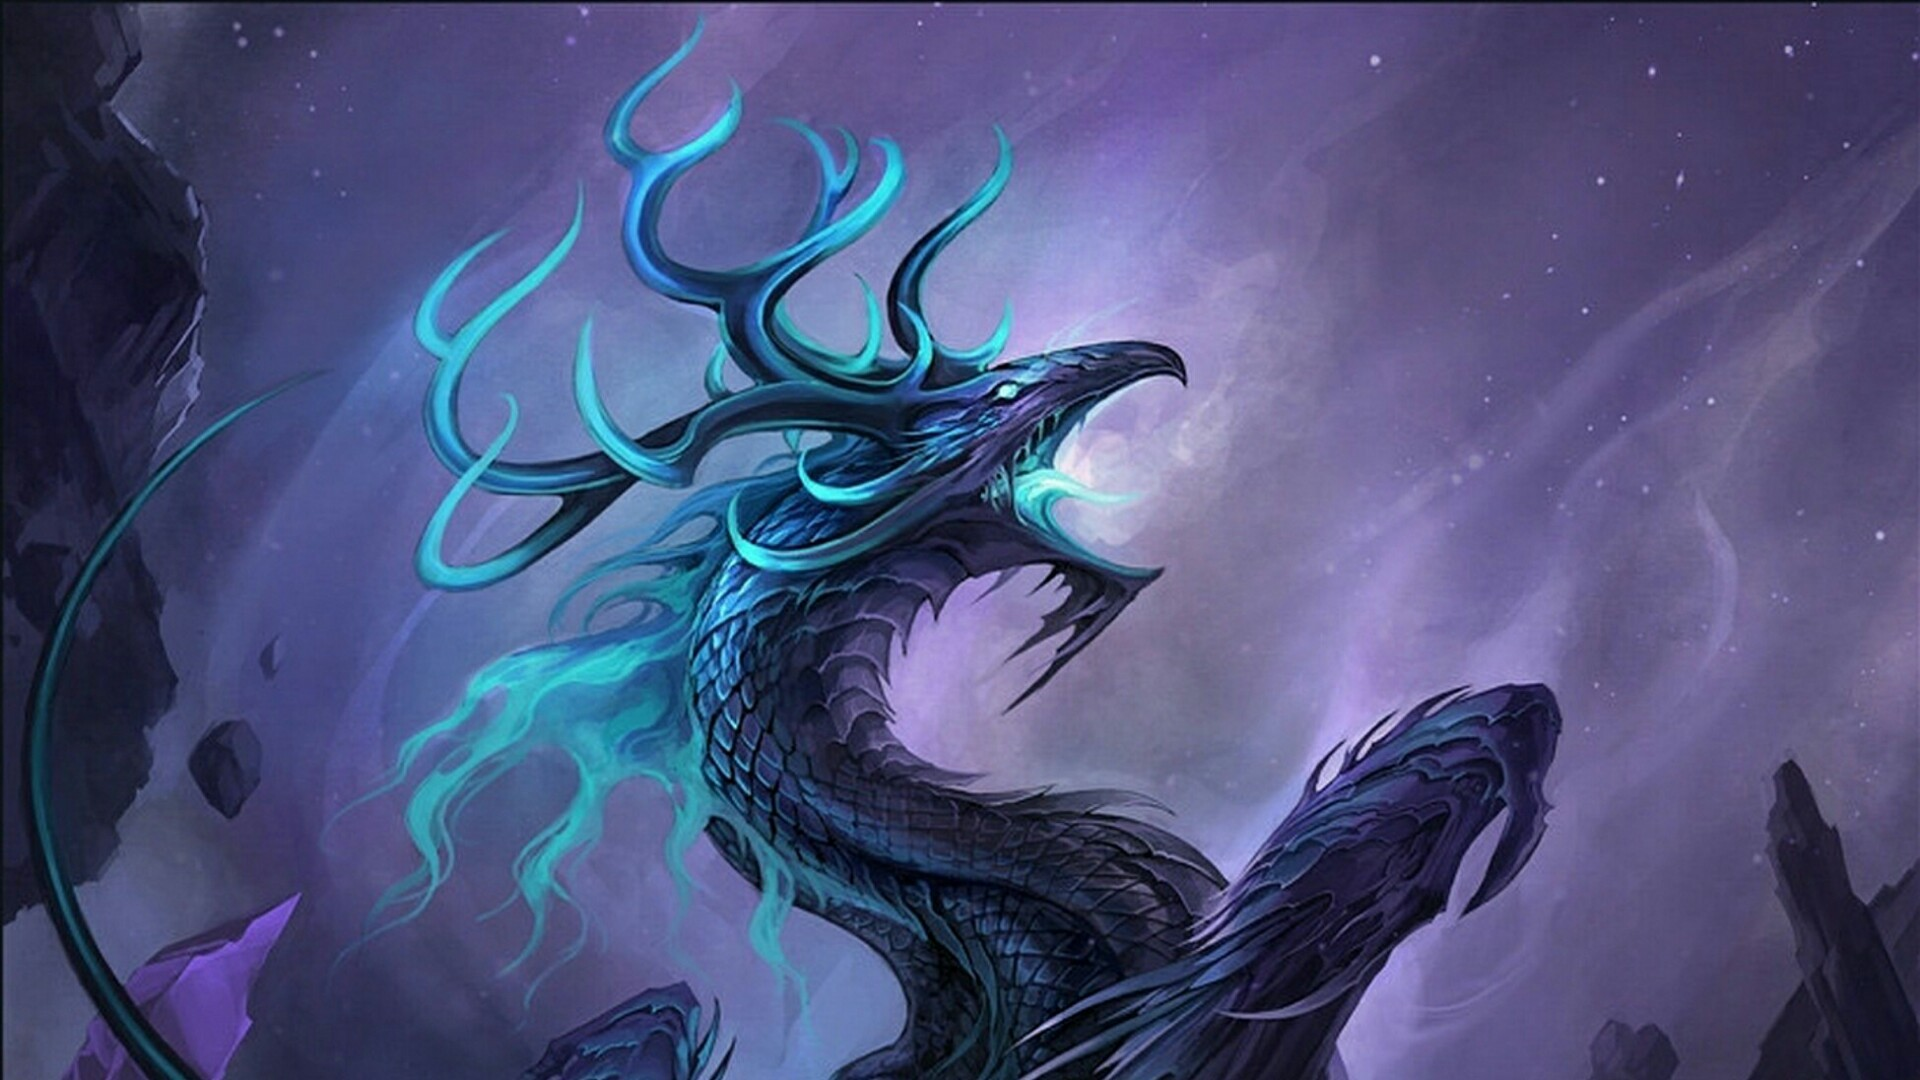 Res: 1920x1080, Ice Dragon Wallpaper | Wallpaper Studio 10 | Tens of thousands HD and  UltraHD wallpapers for Android, Windows and Xbox